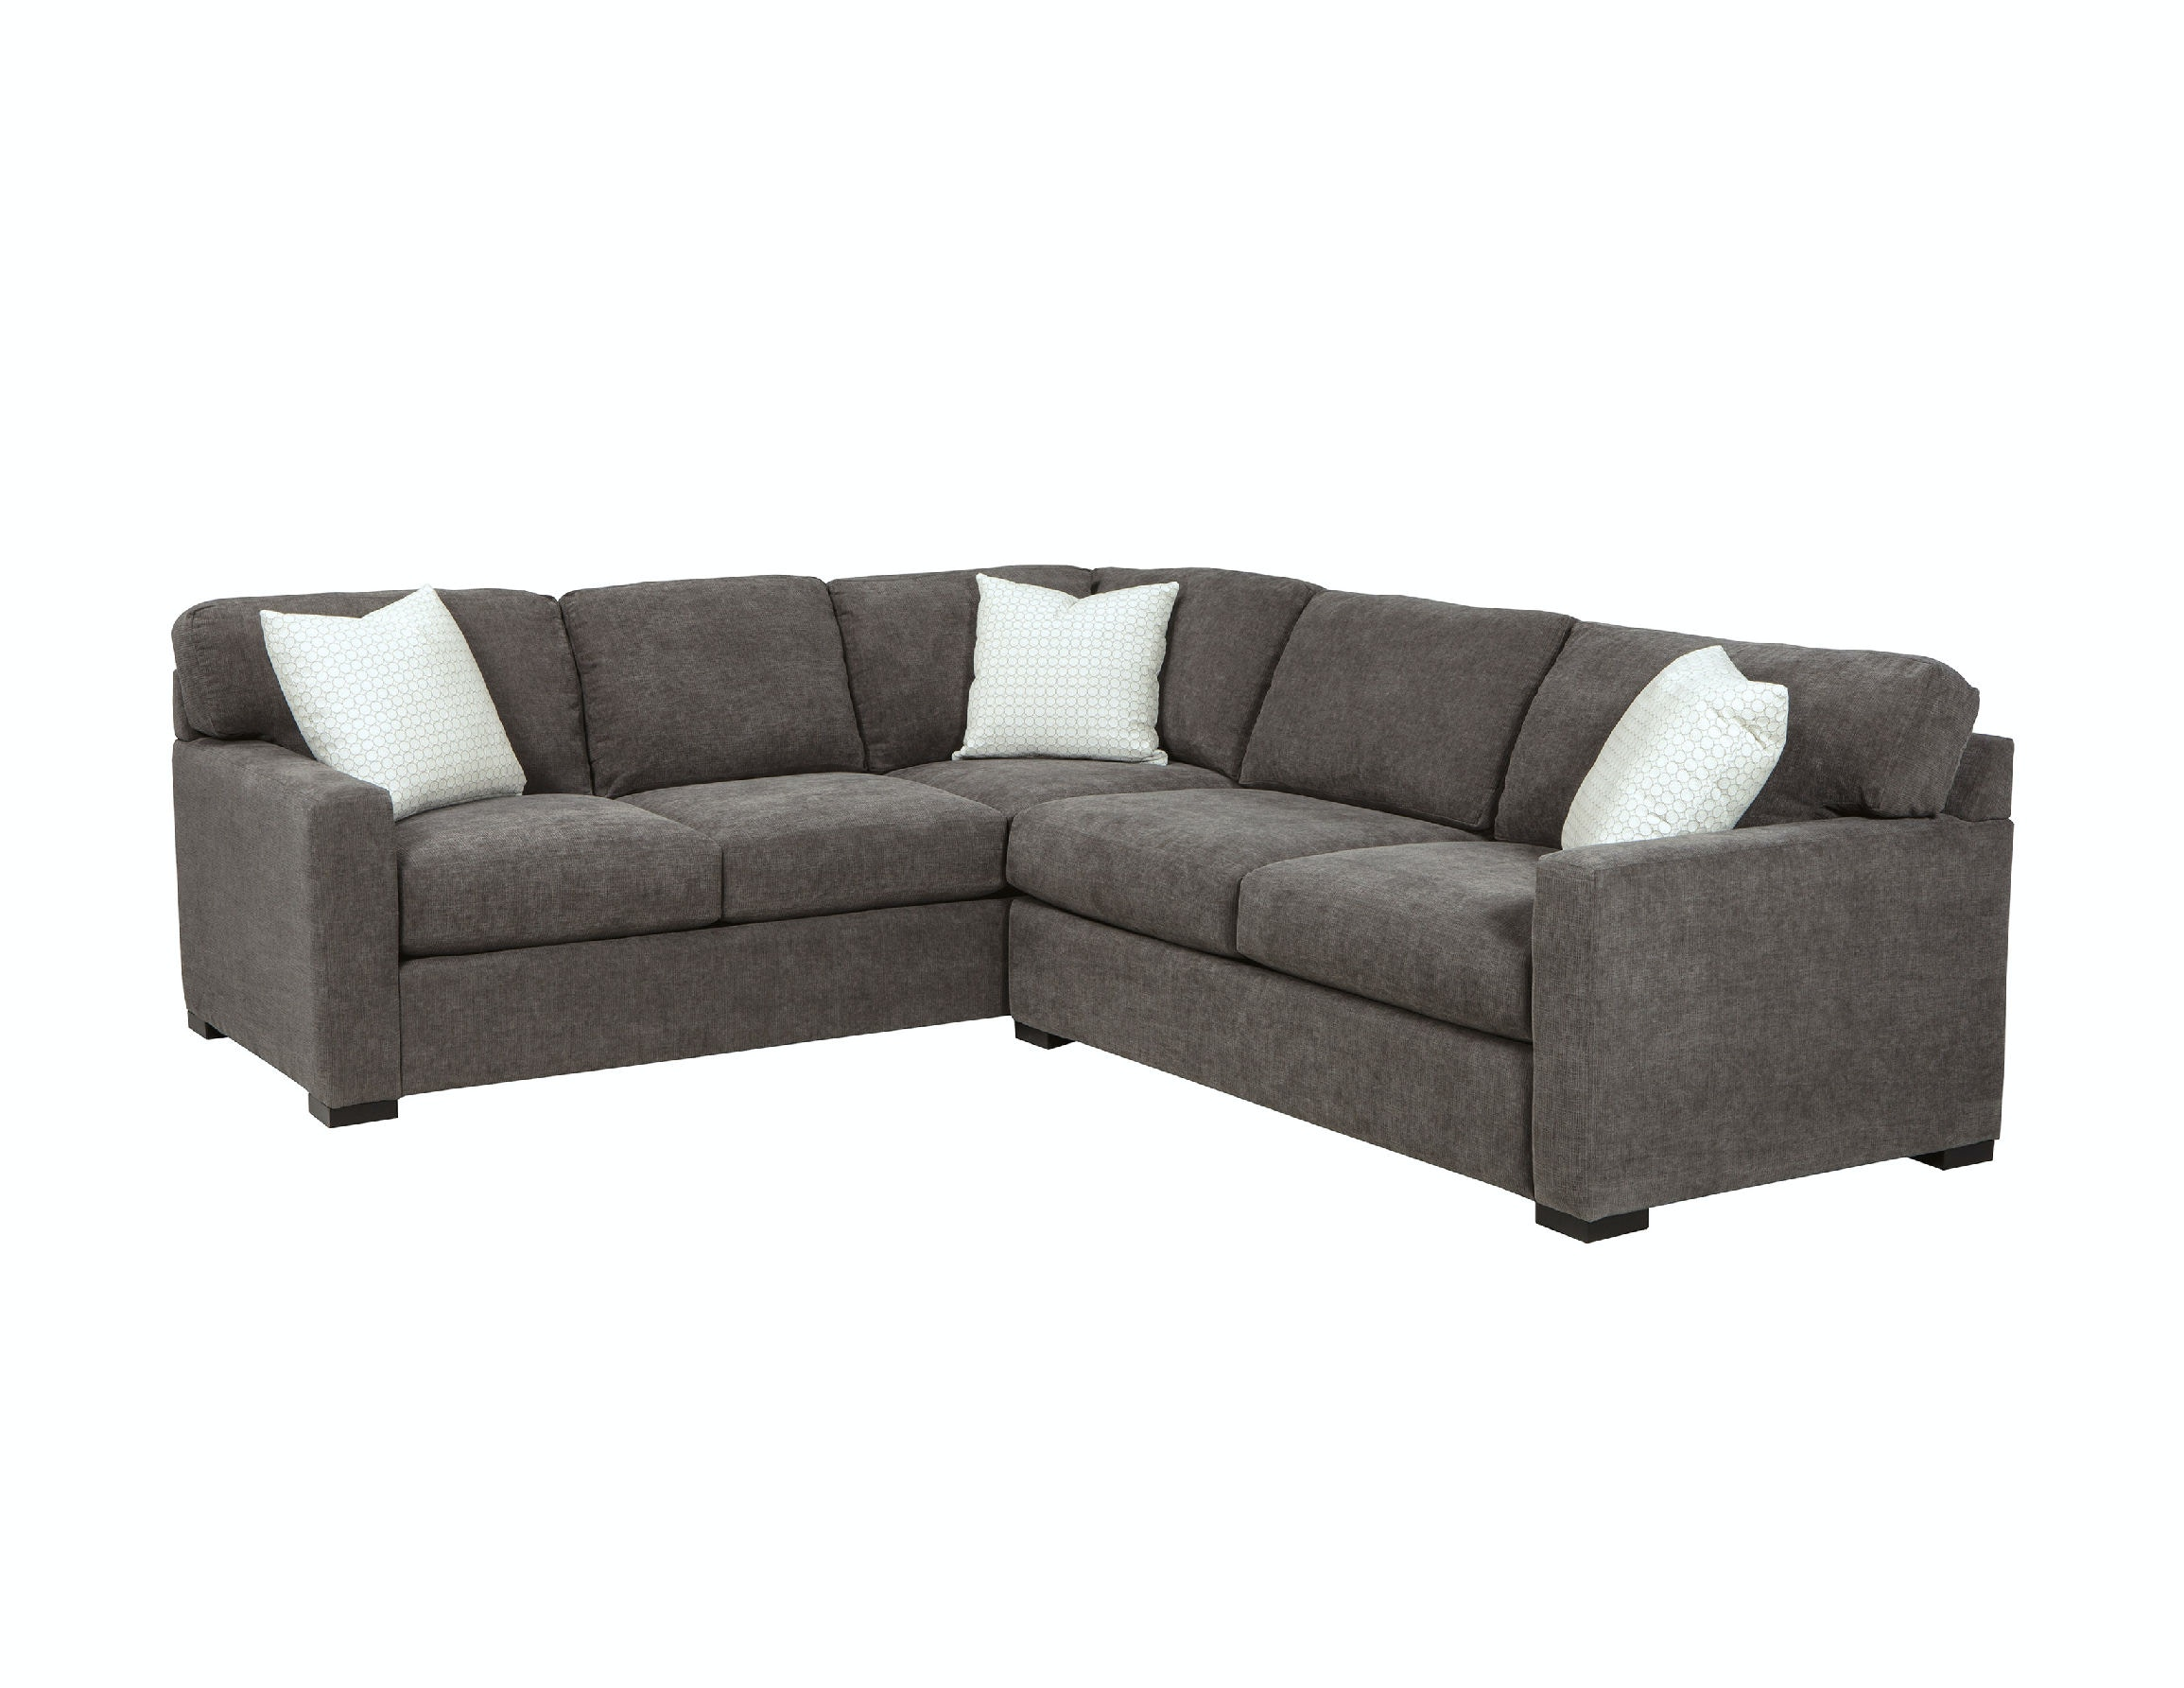 Jonathan Louis International Gregory Sectional 367 Sectional ...